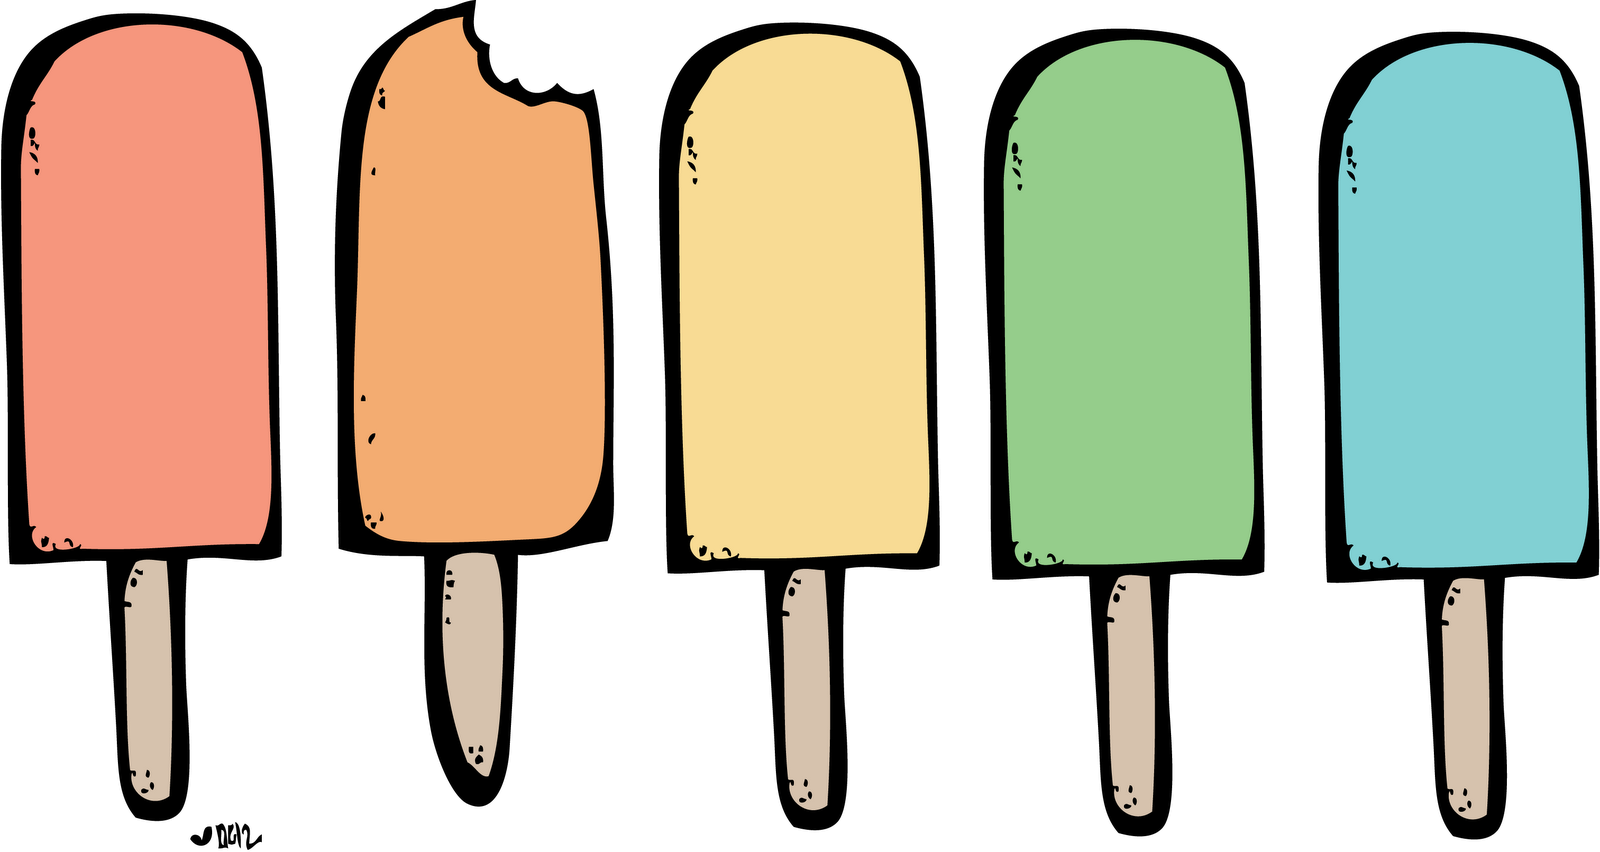 Ice cream popsicle clipart.